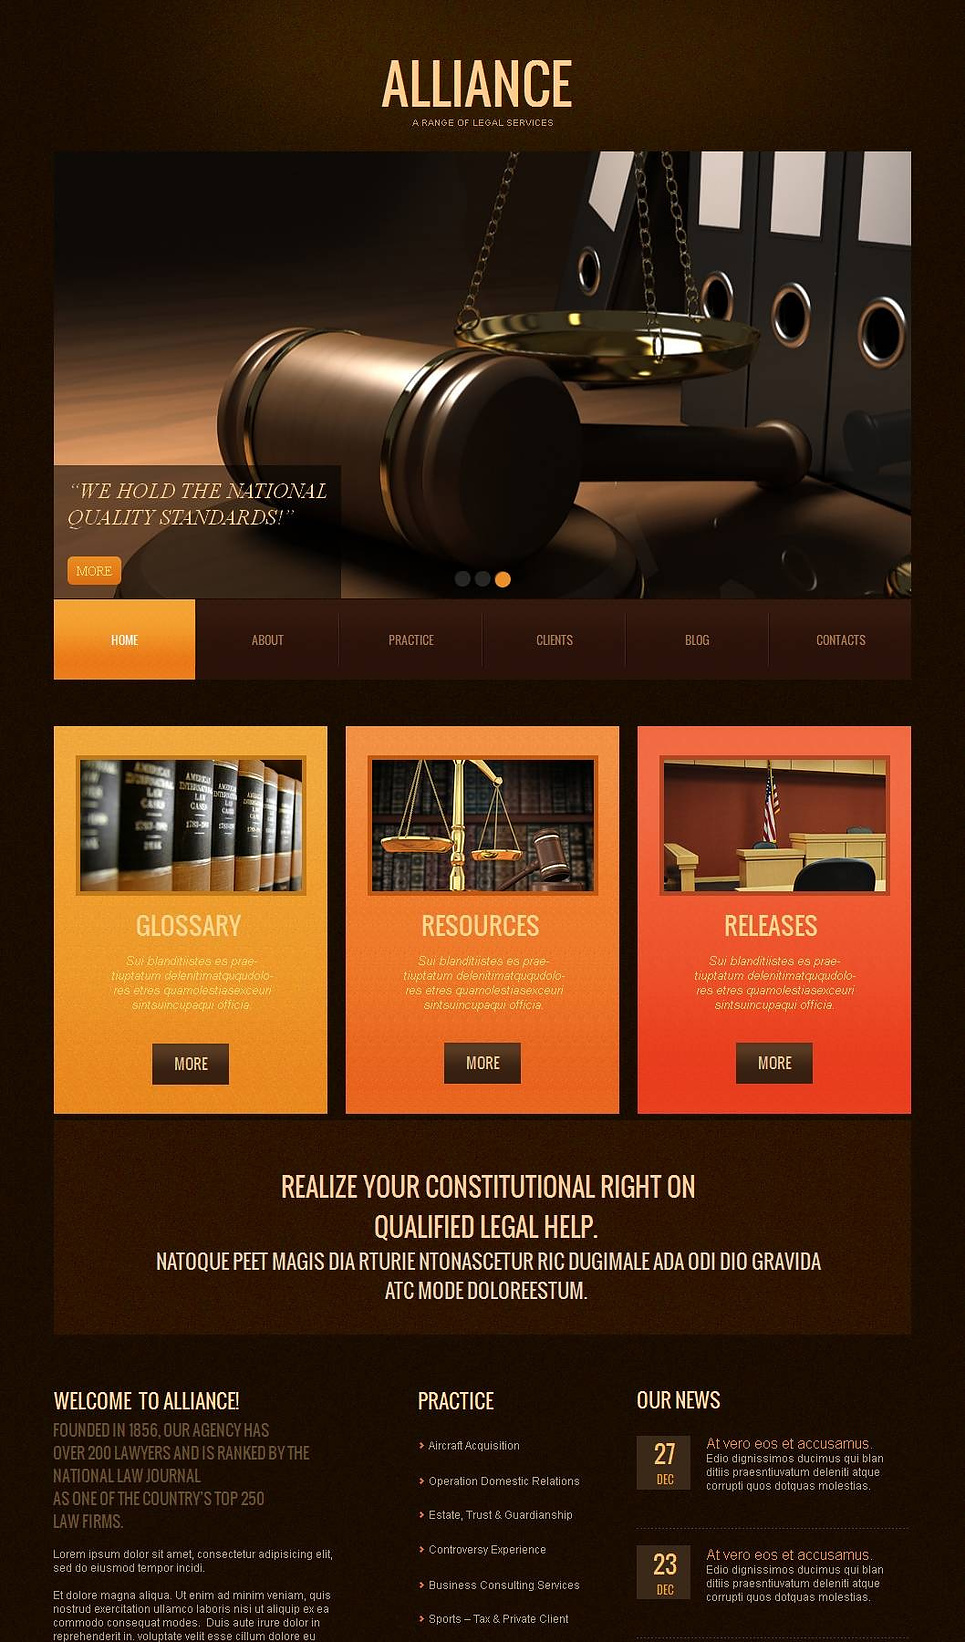 Lawyer's Web Template with Zoom Effect in the Image Slider - image